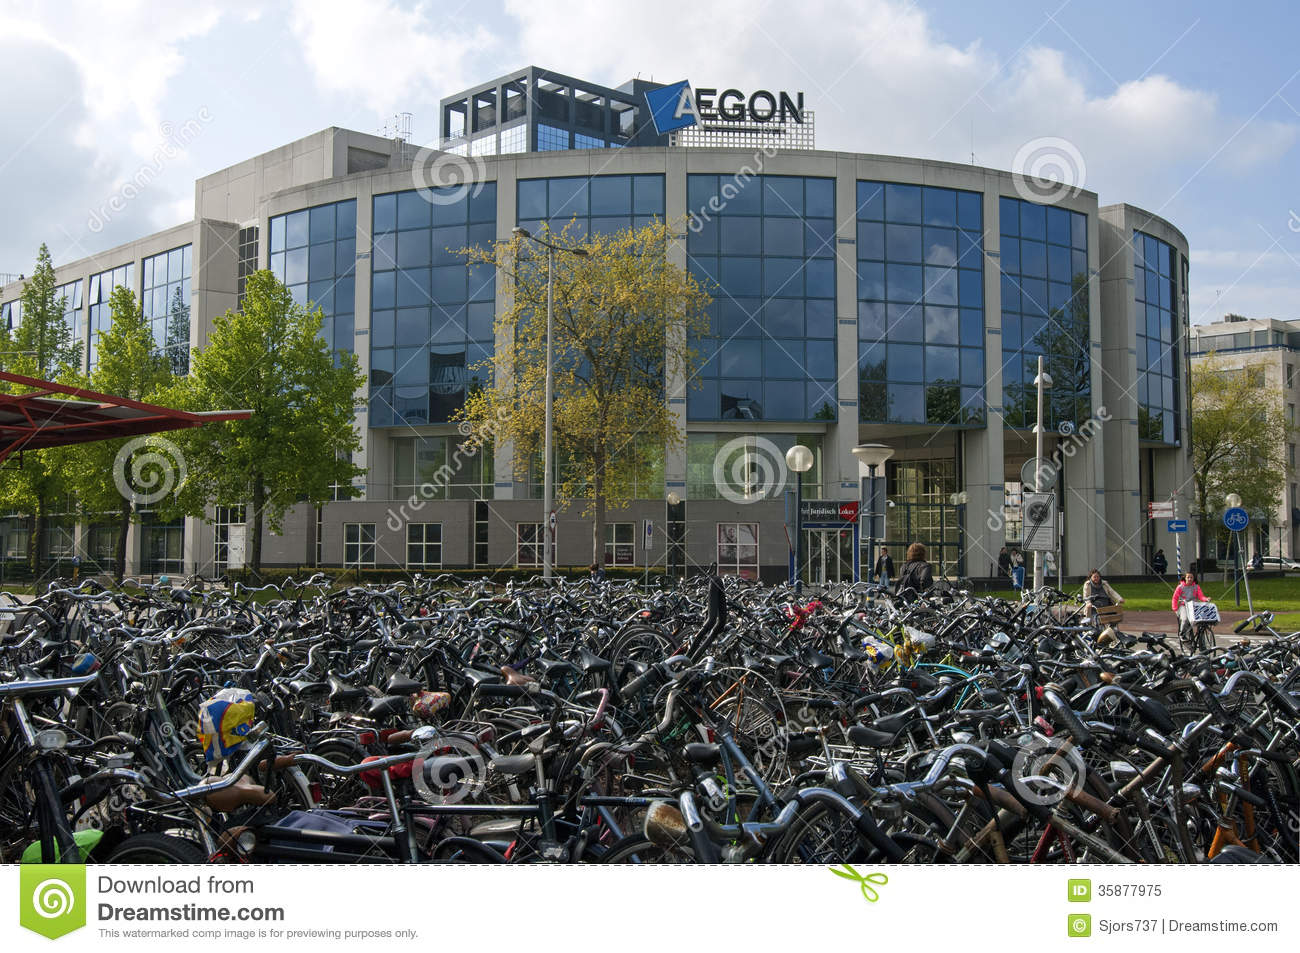 Office Building Aegon And Bike Shed Of Station Editorial